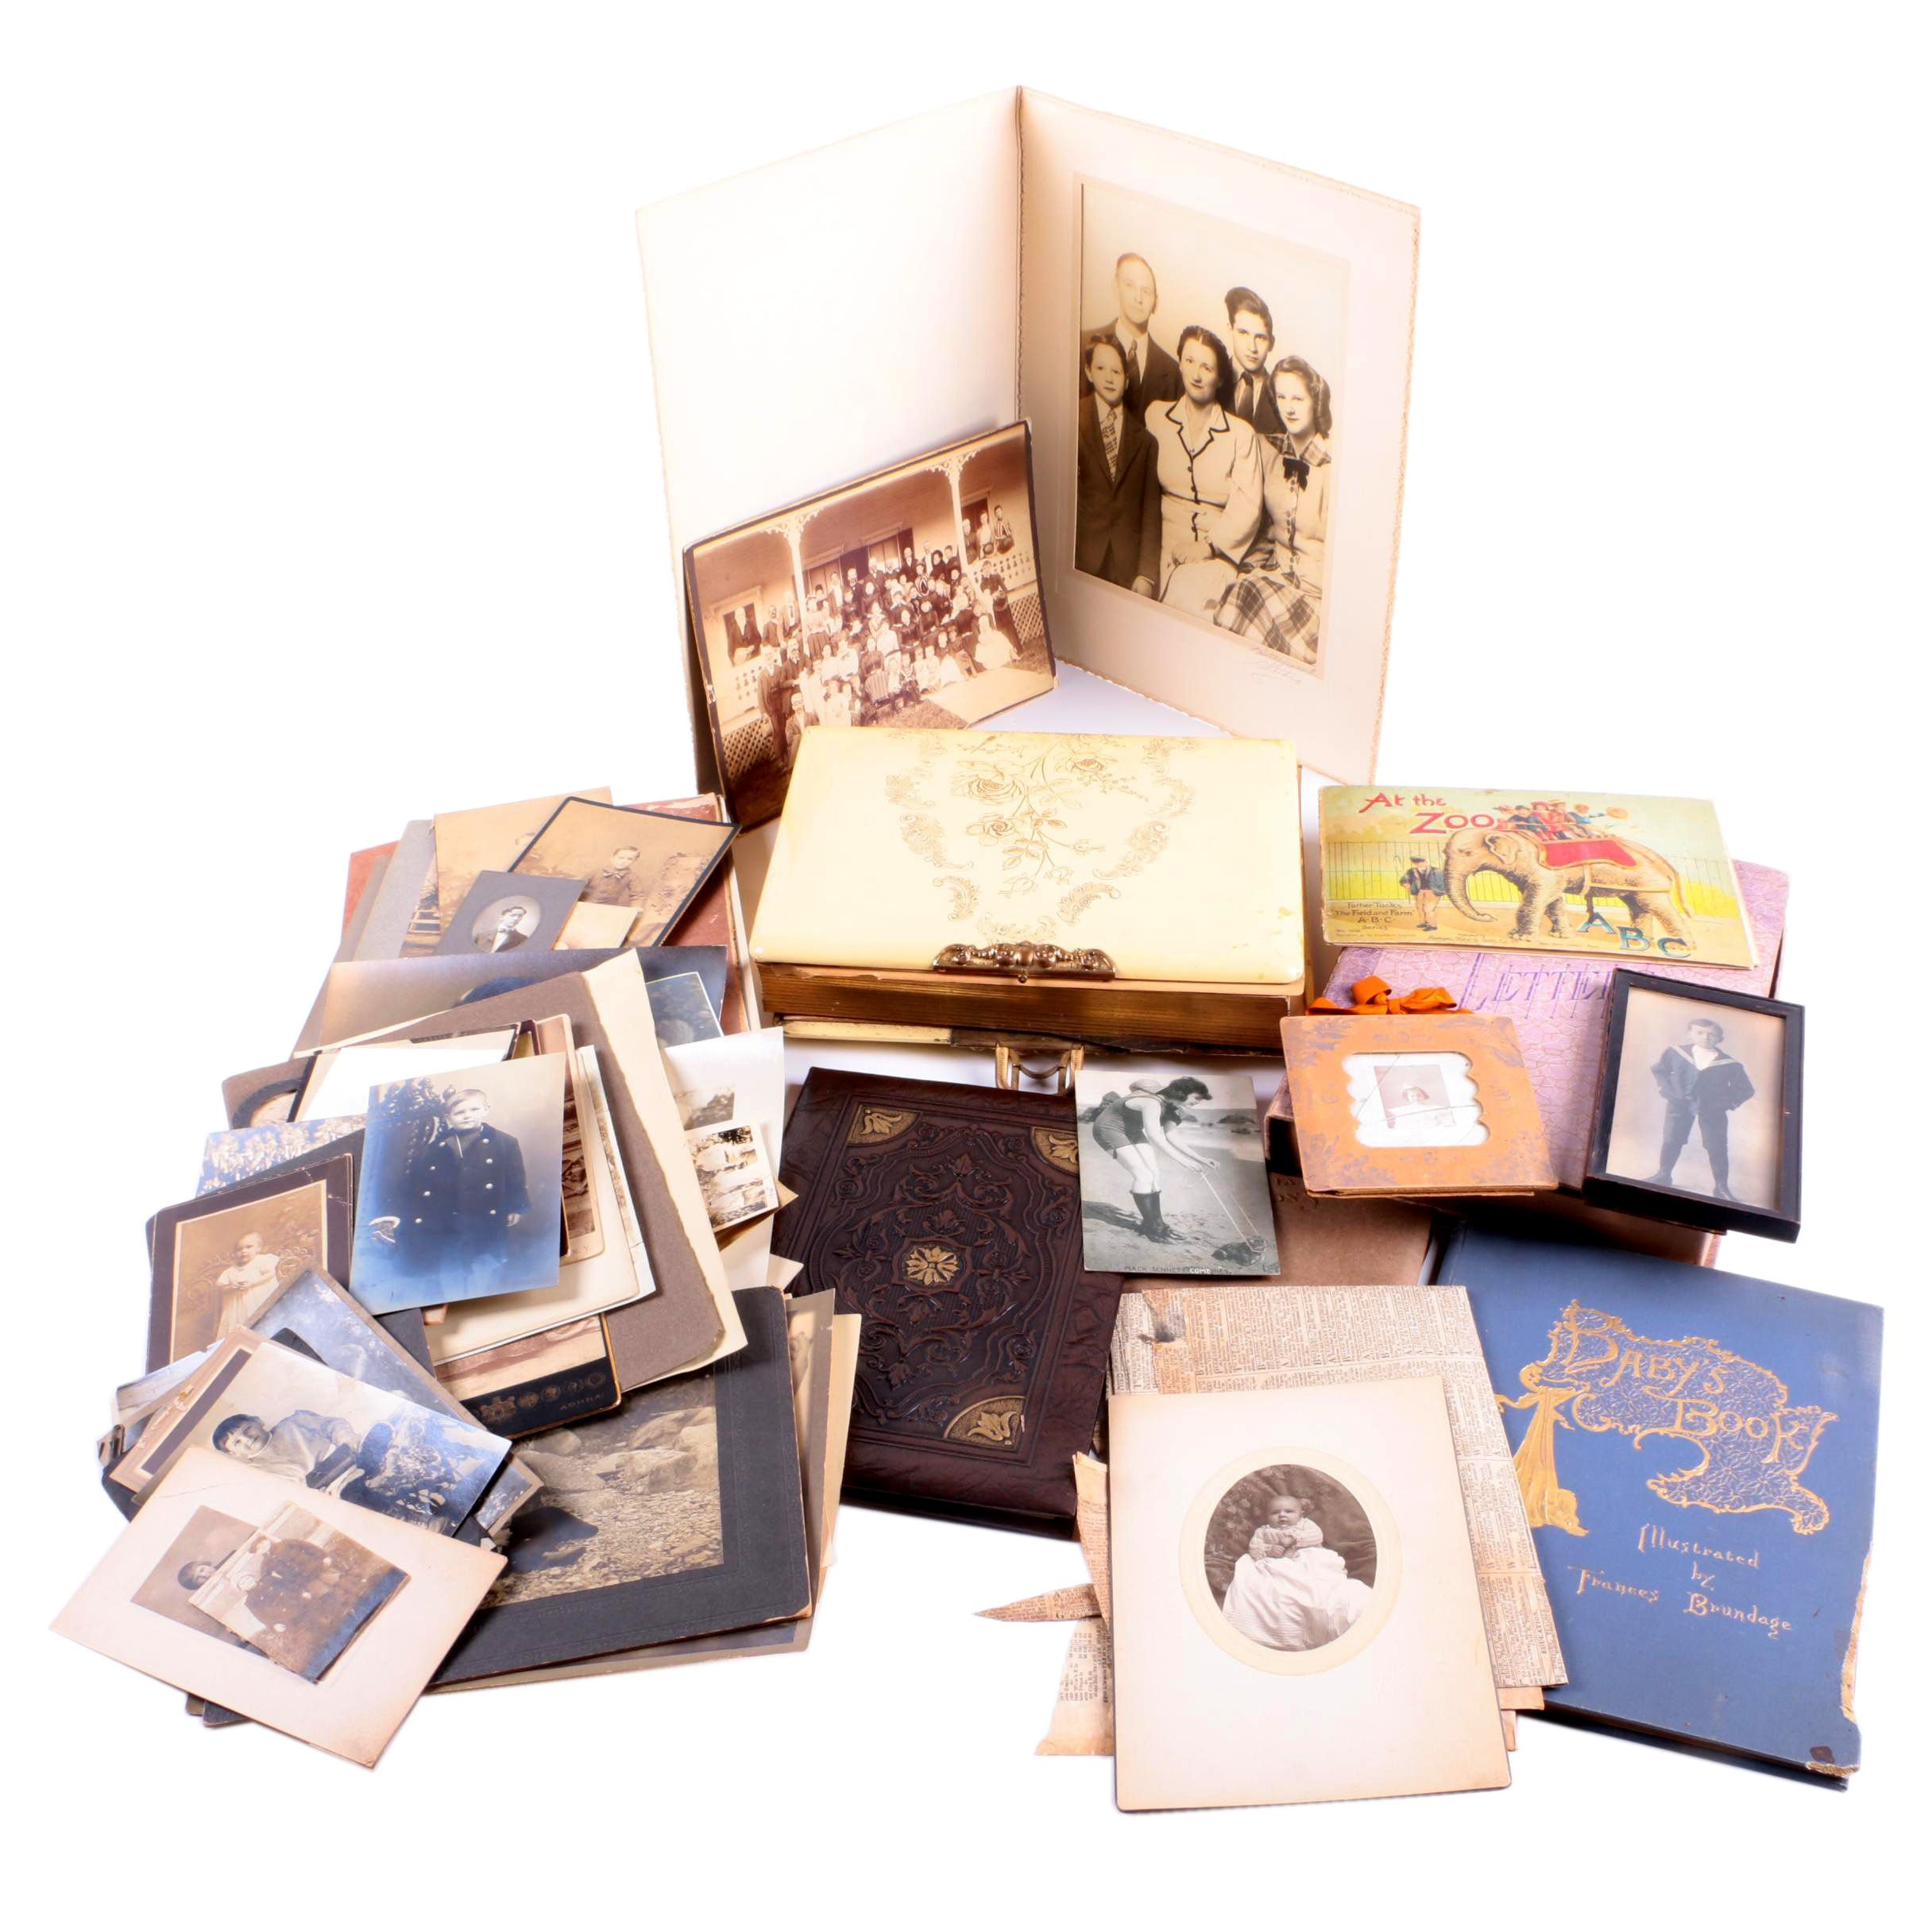 Family Photographs, Postcards, and Baby Books